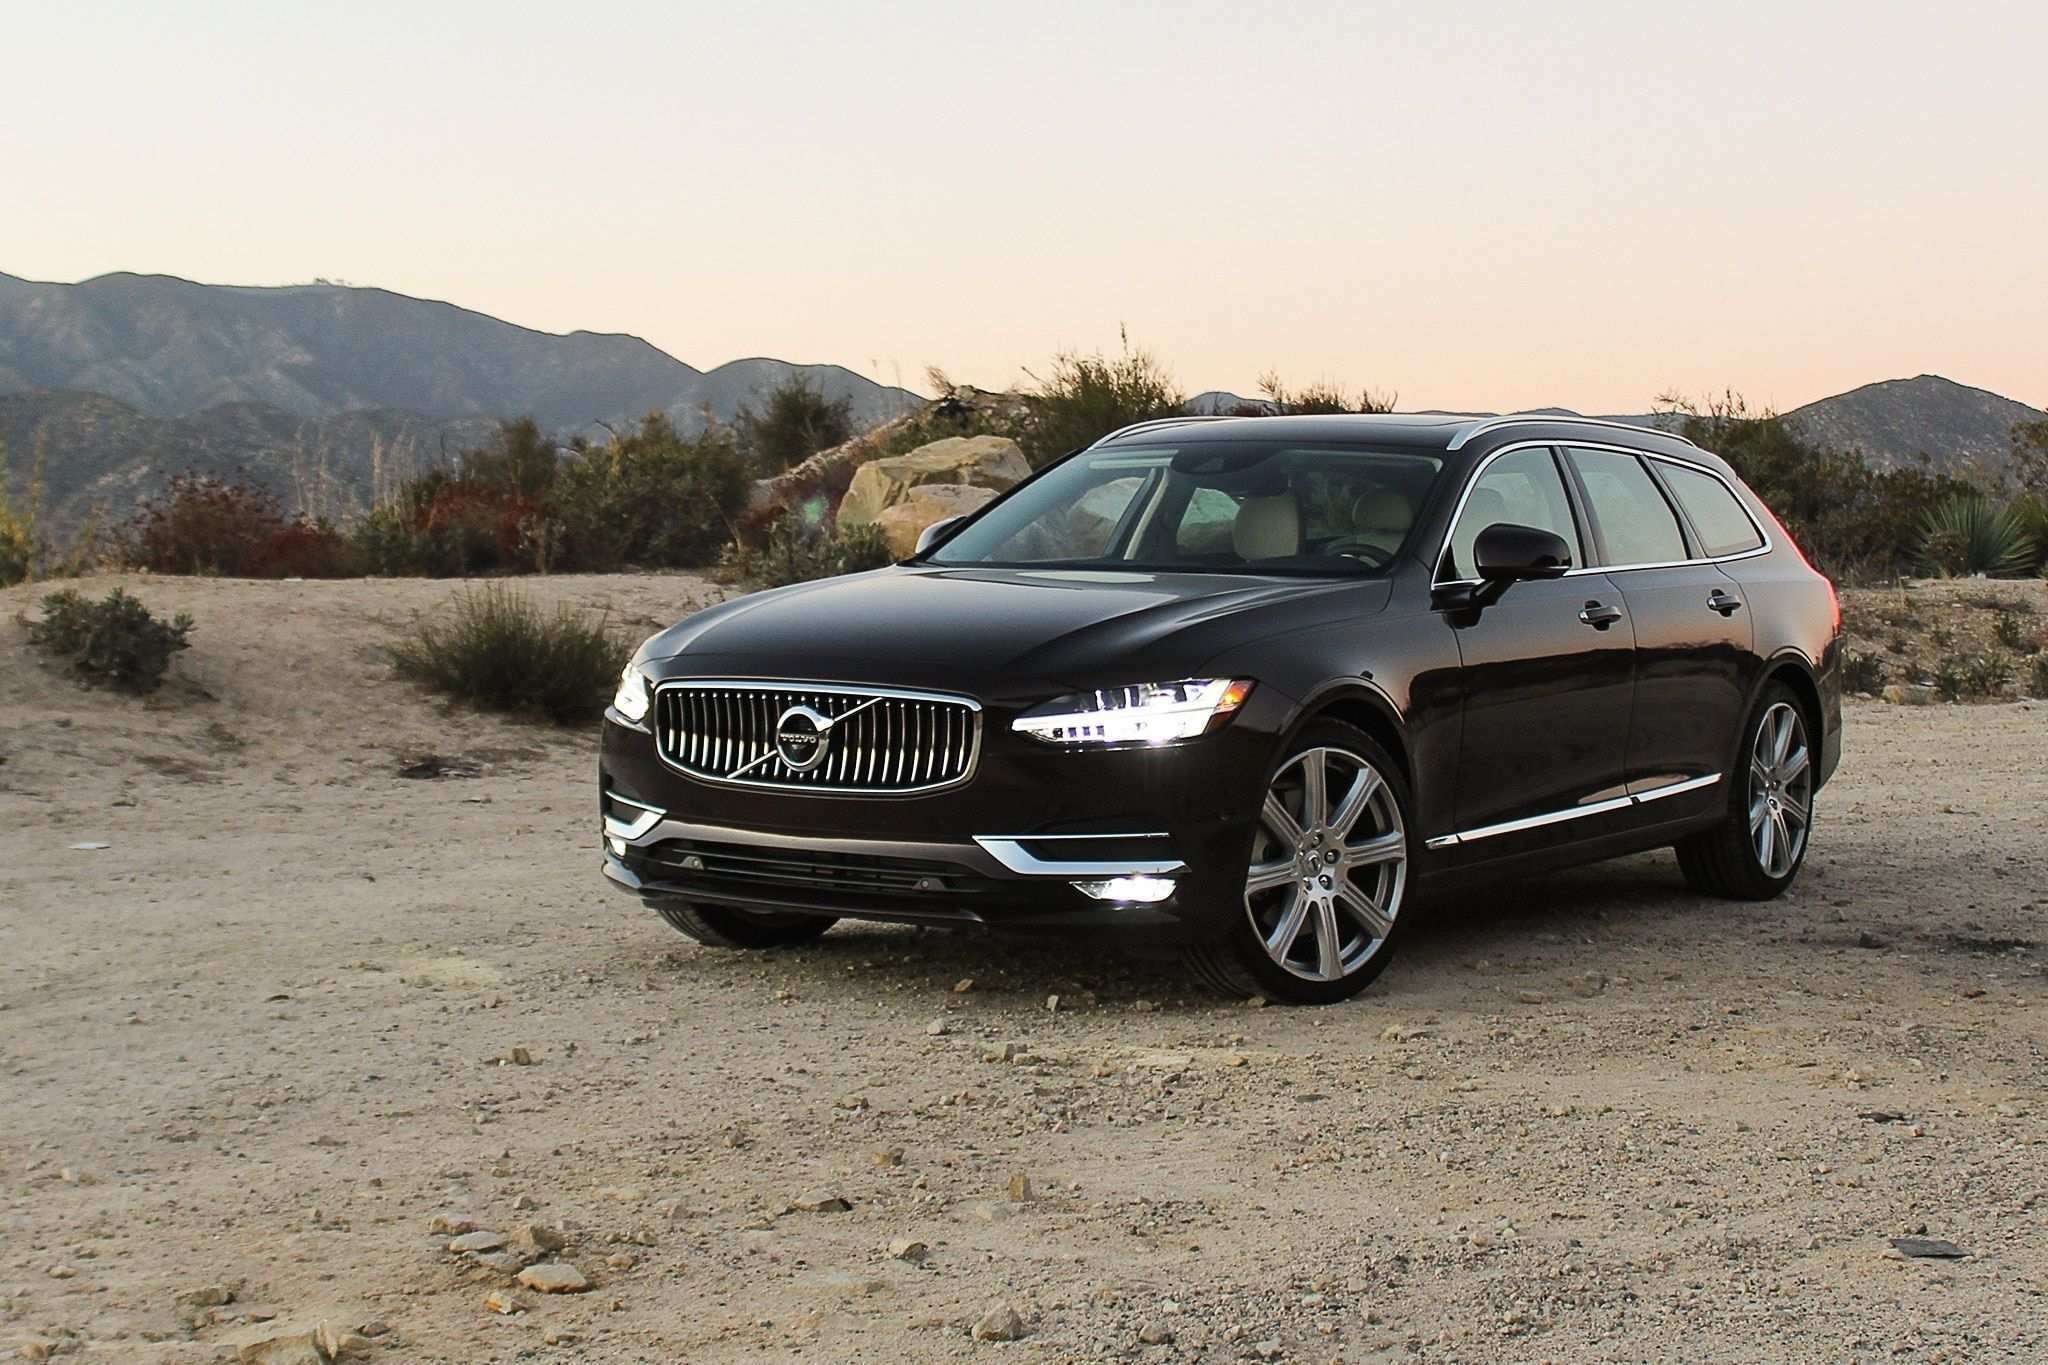 41 Best 2020 Volvo V90 Specification Images